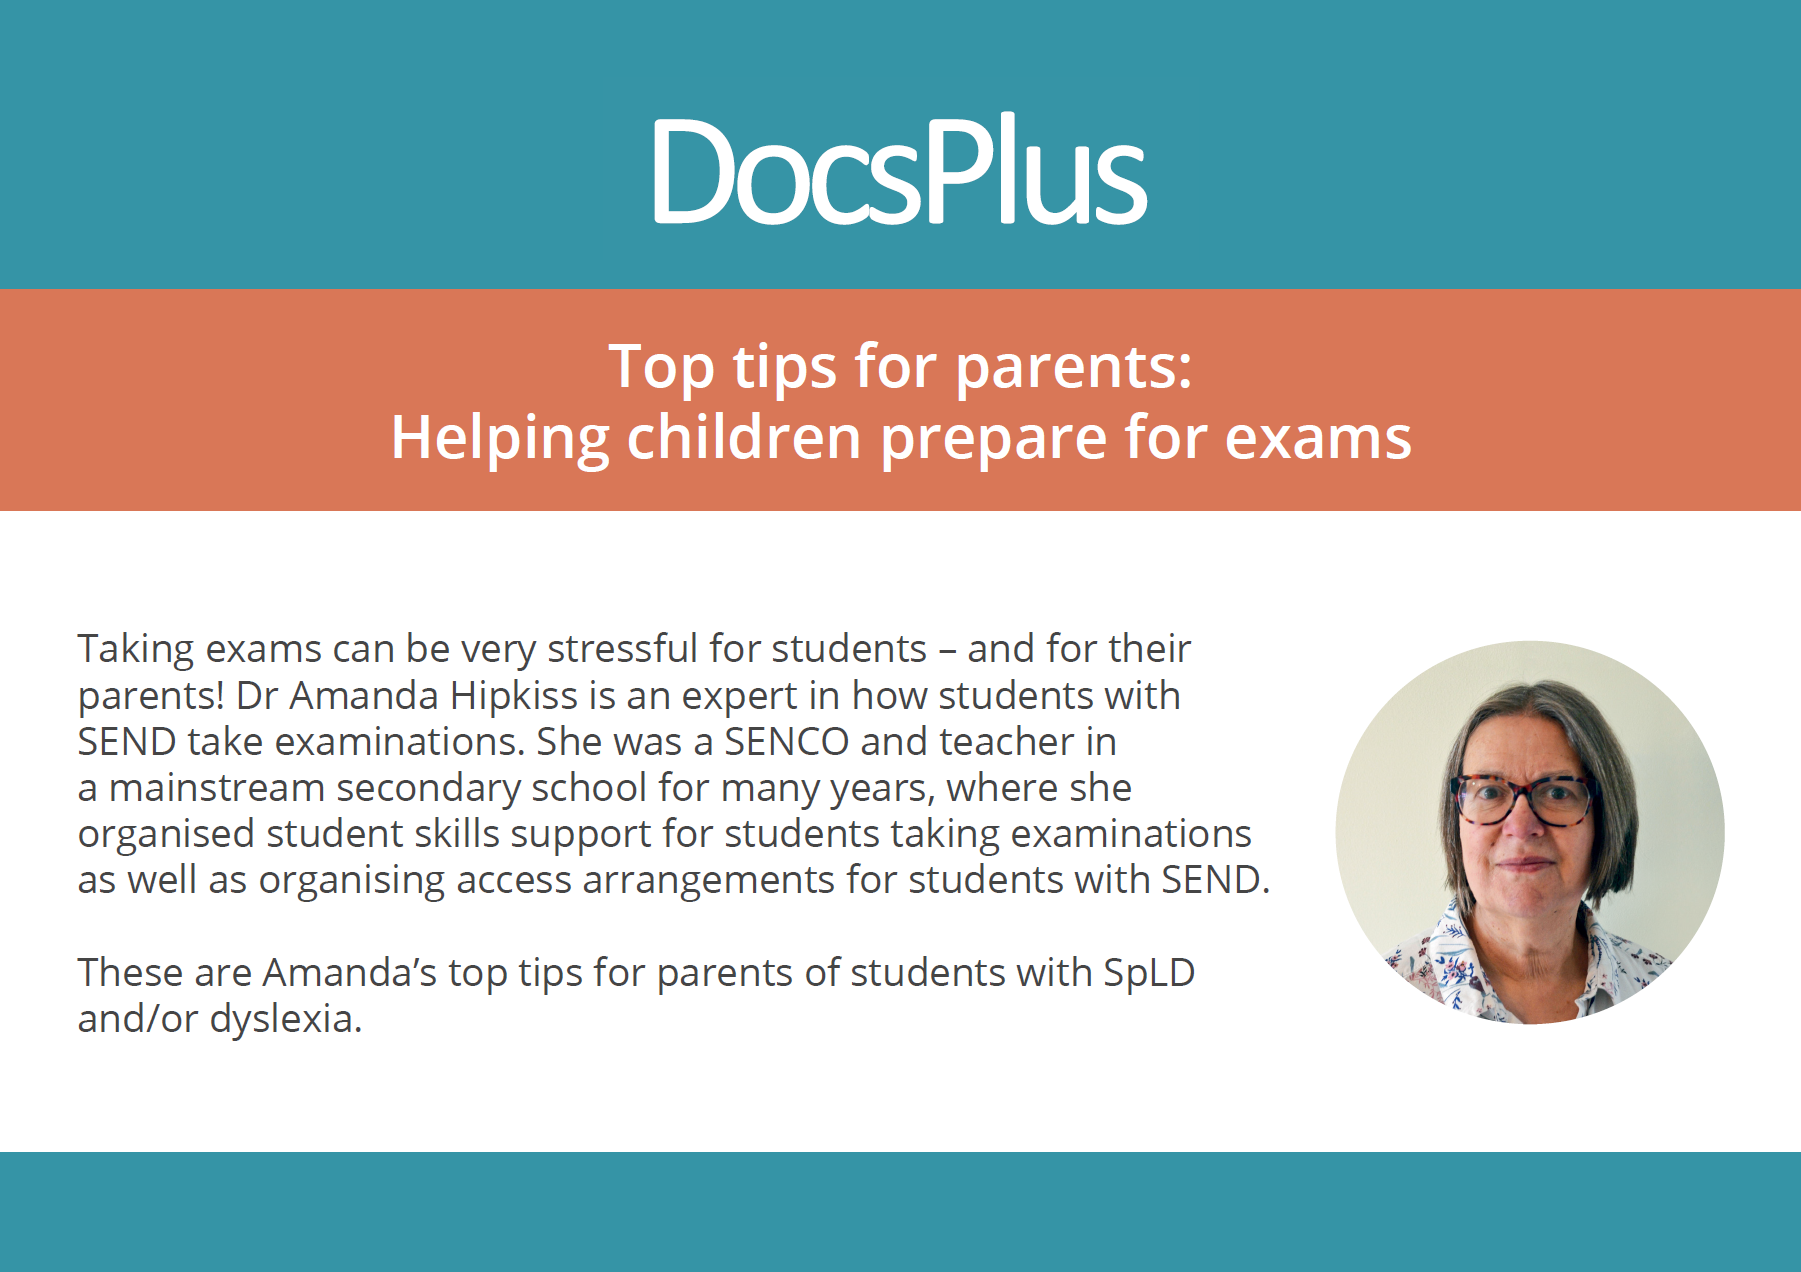 Top tips for parents - helping children prepare for exams